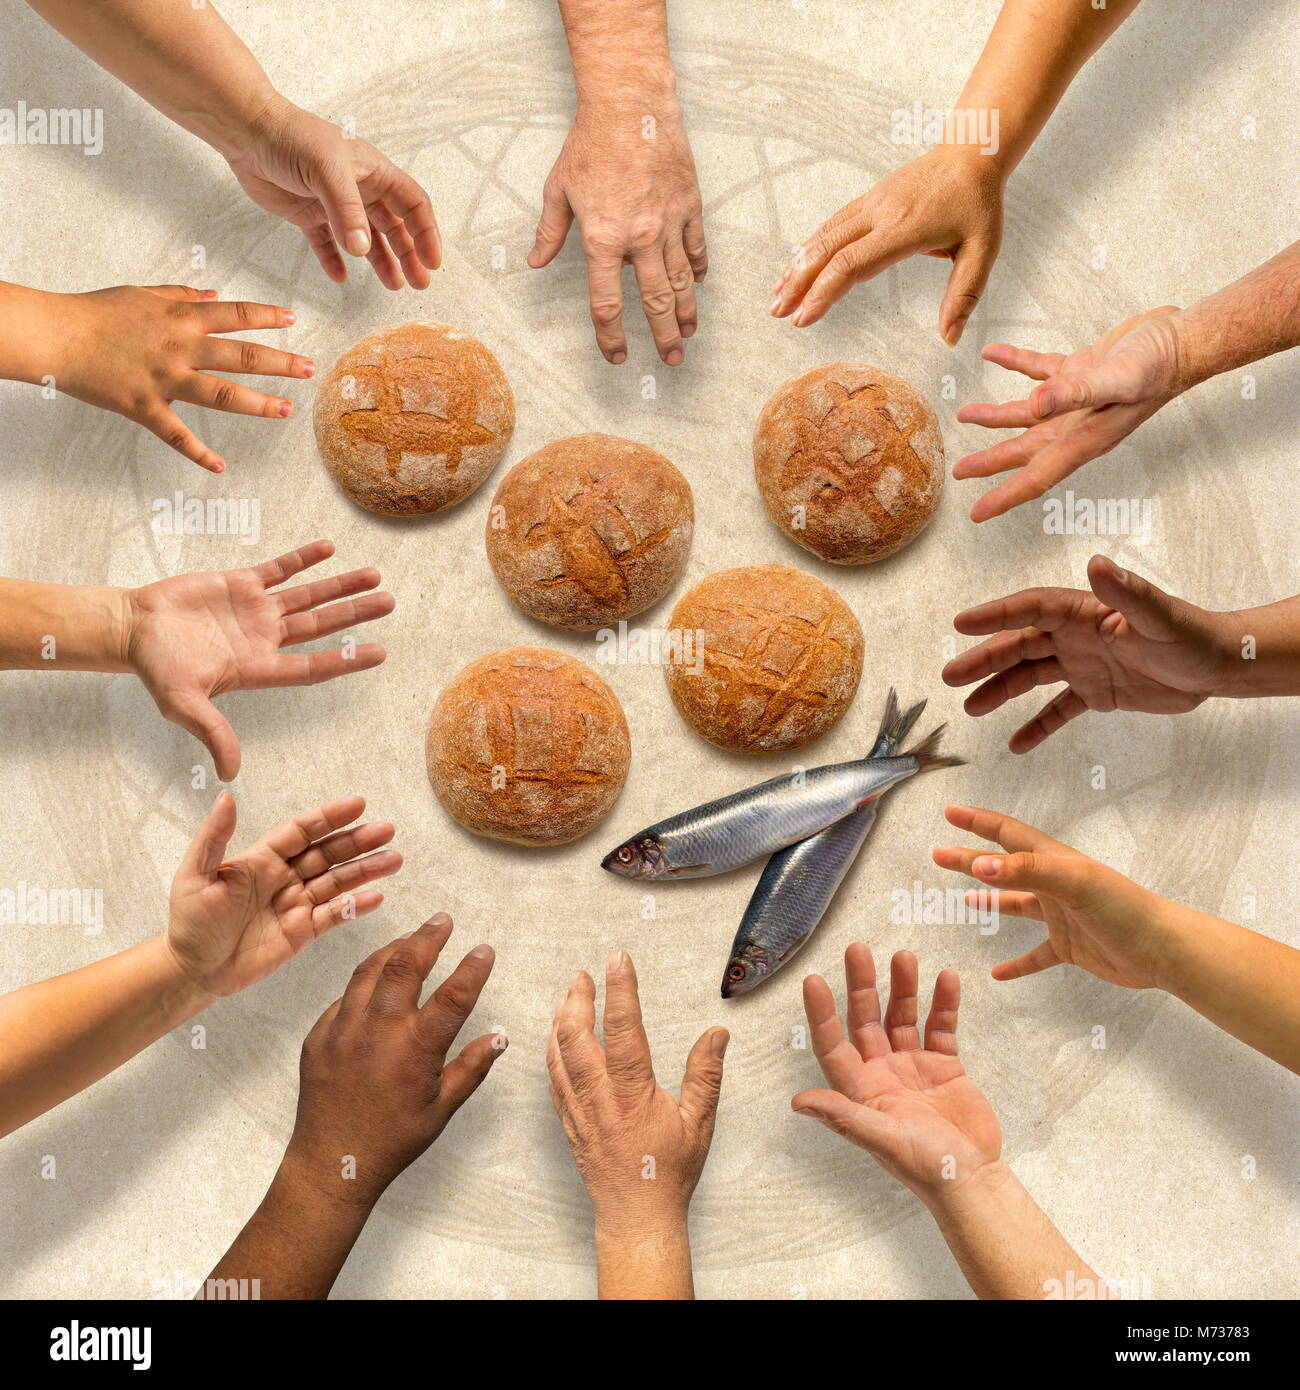 Loaves and fishes stock photos loaves and fishes stock for Loaves fishes